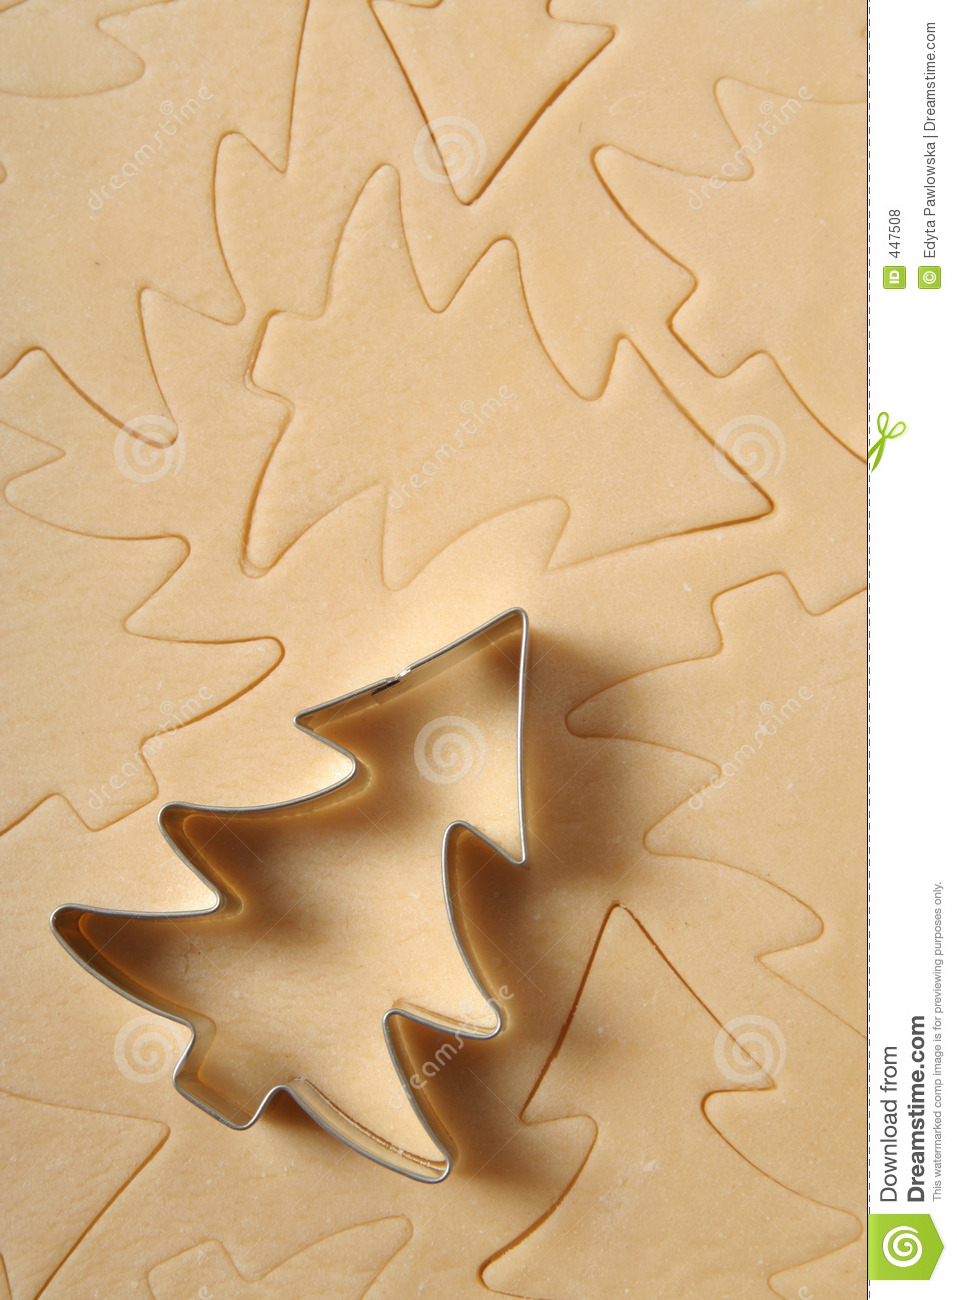 download christmas tree cookie cutter stock photo image of special cutters 447508